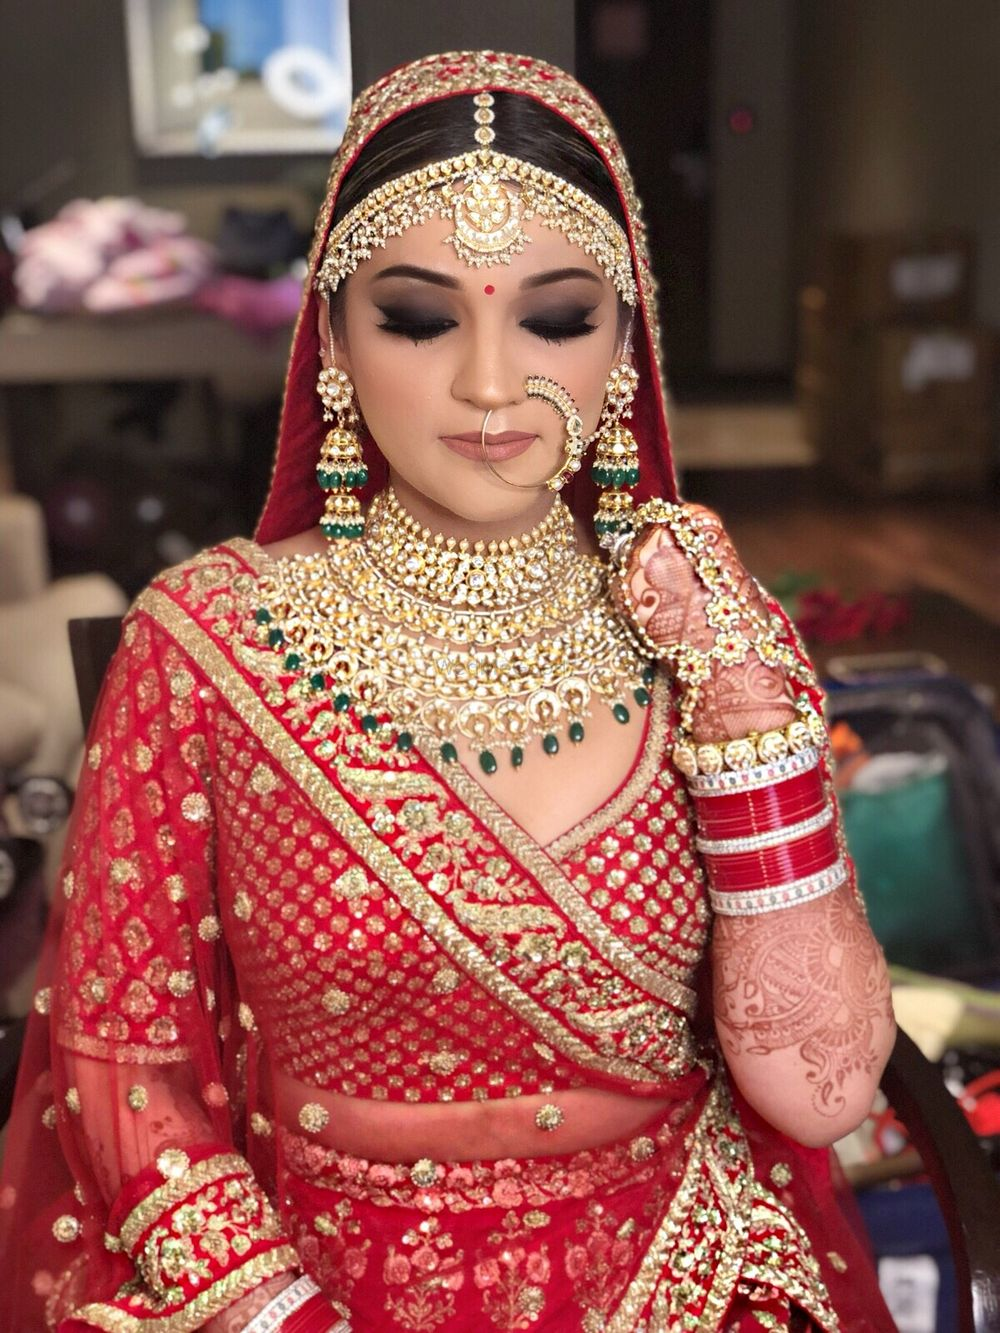 Photo of Pretty bride wearing red lehenga with gold jewellery for wedding